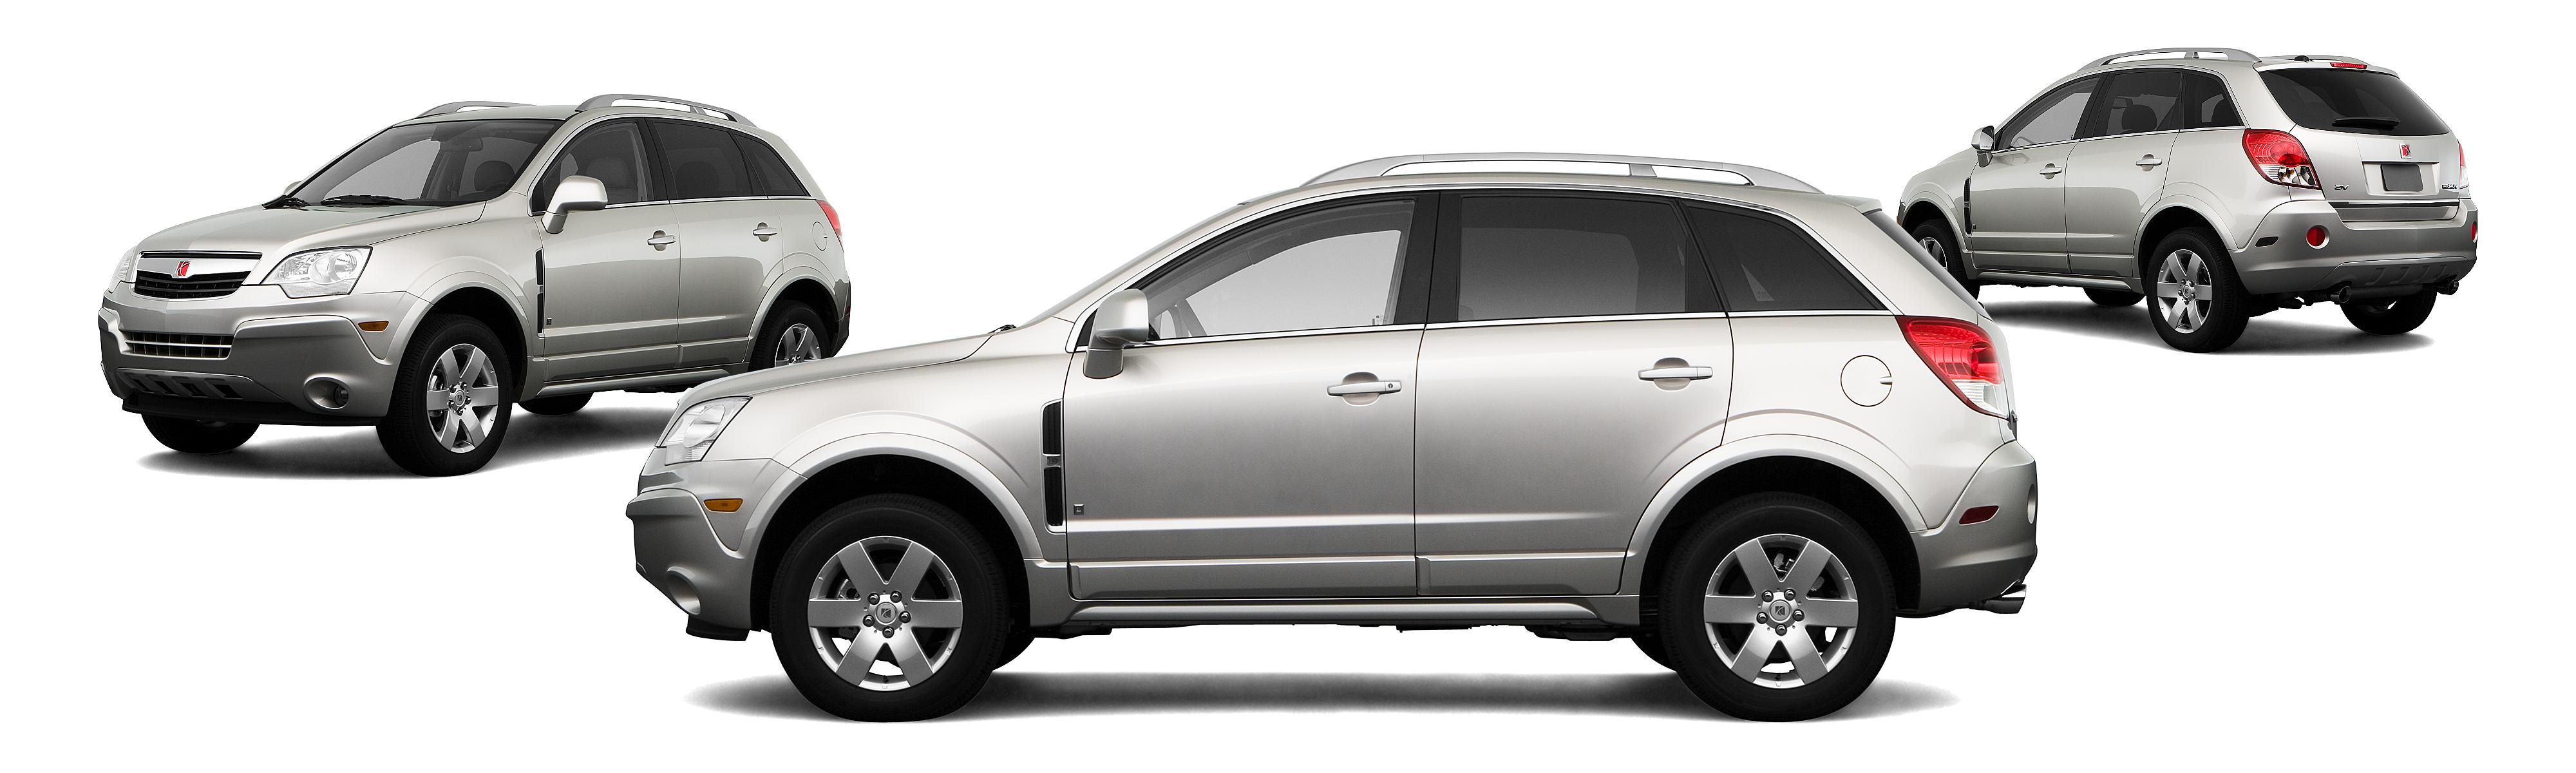 2008 saturn vue xr 4dr suv research groovecar rh groovecar com